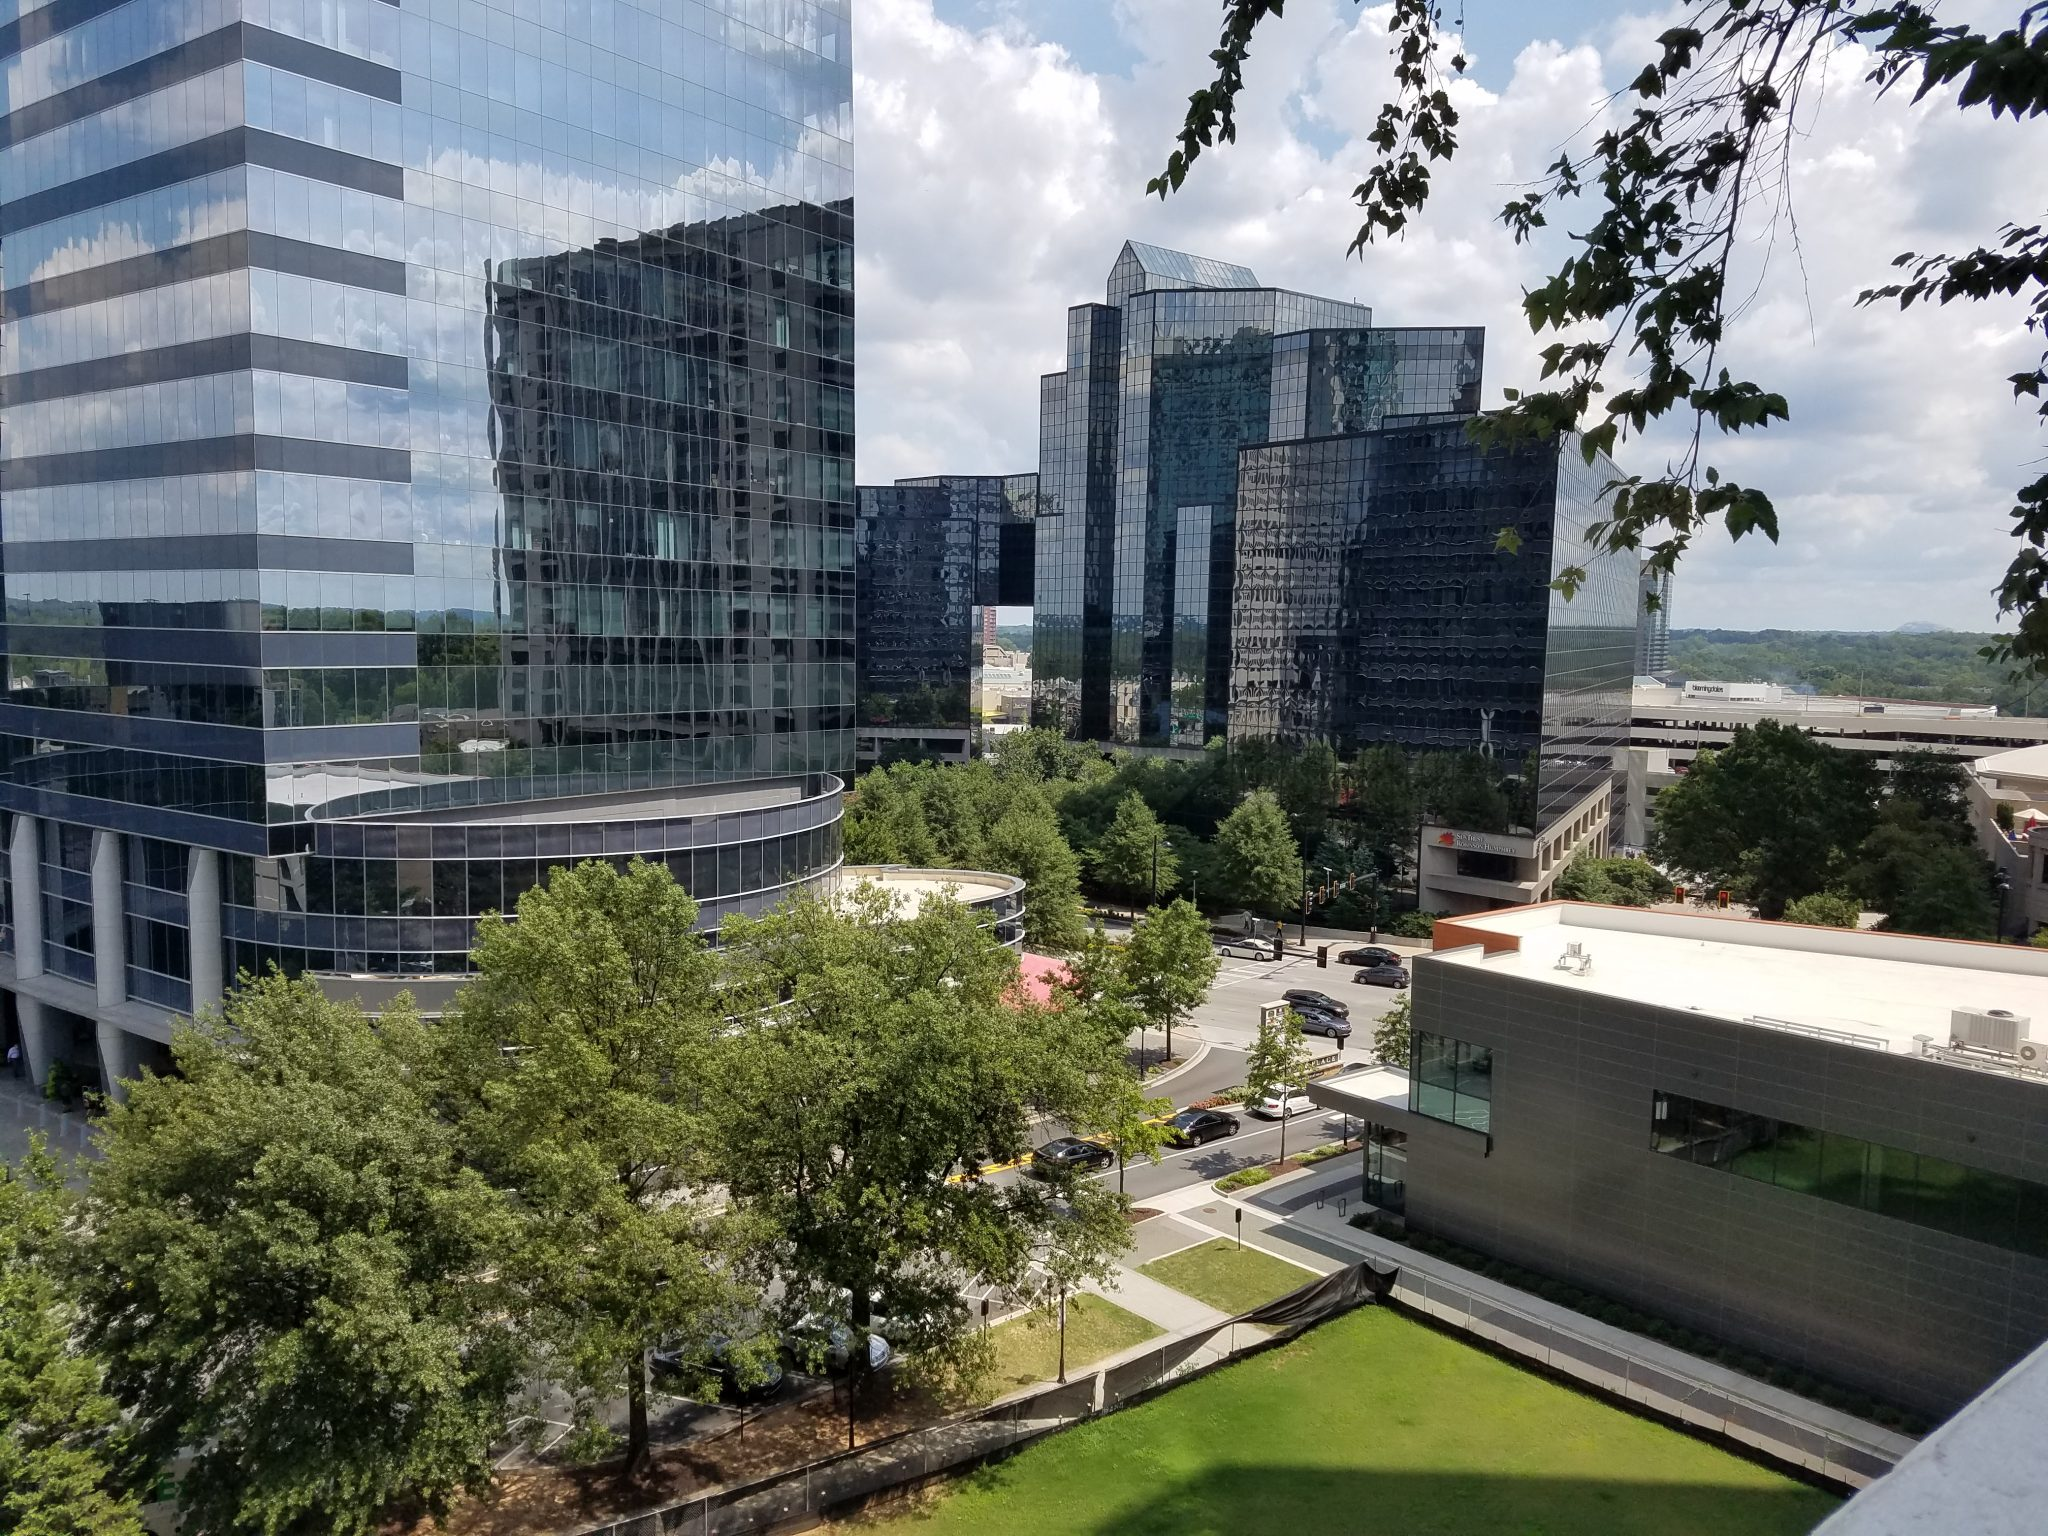 The Realm in Buckhead view from 4th floor towards Lenox Mall